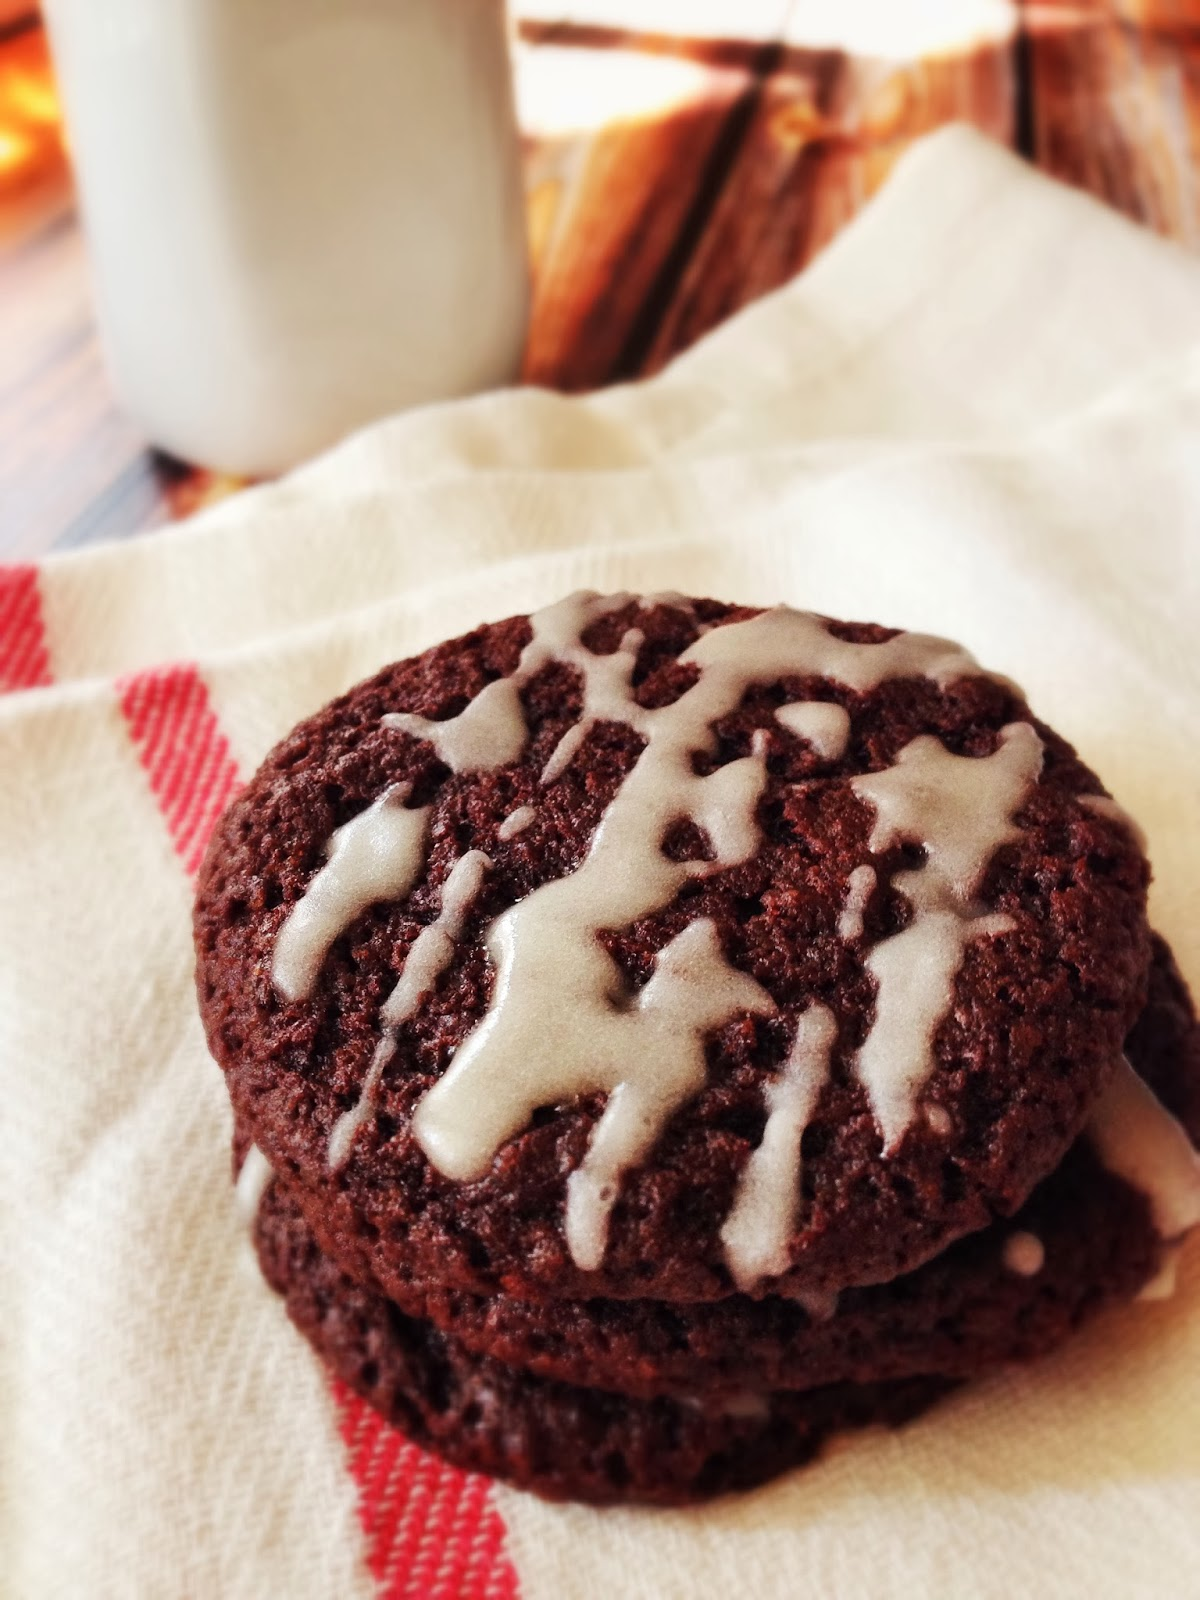 Nutella Chocolate Cookies